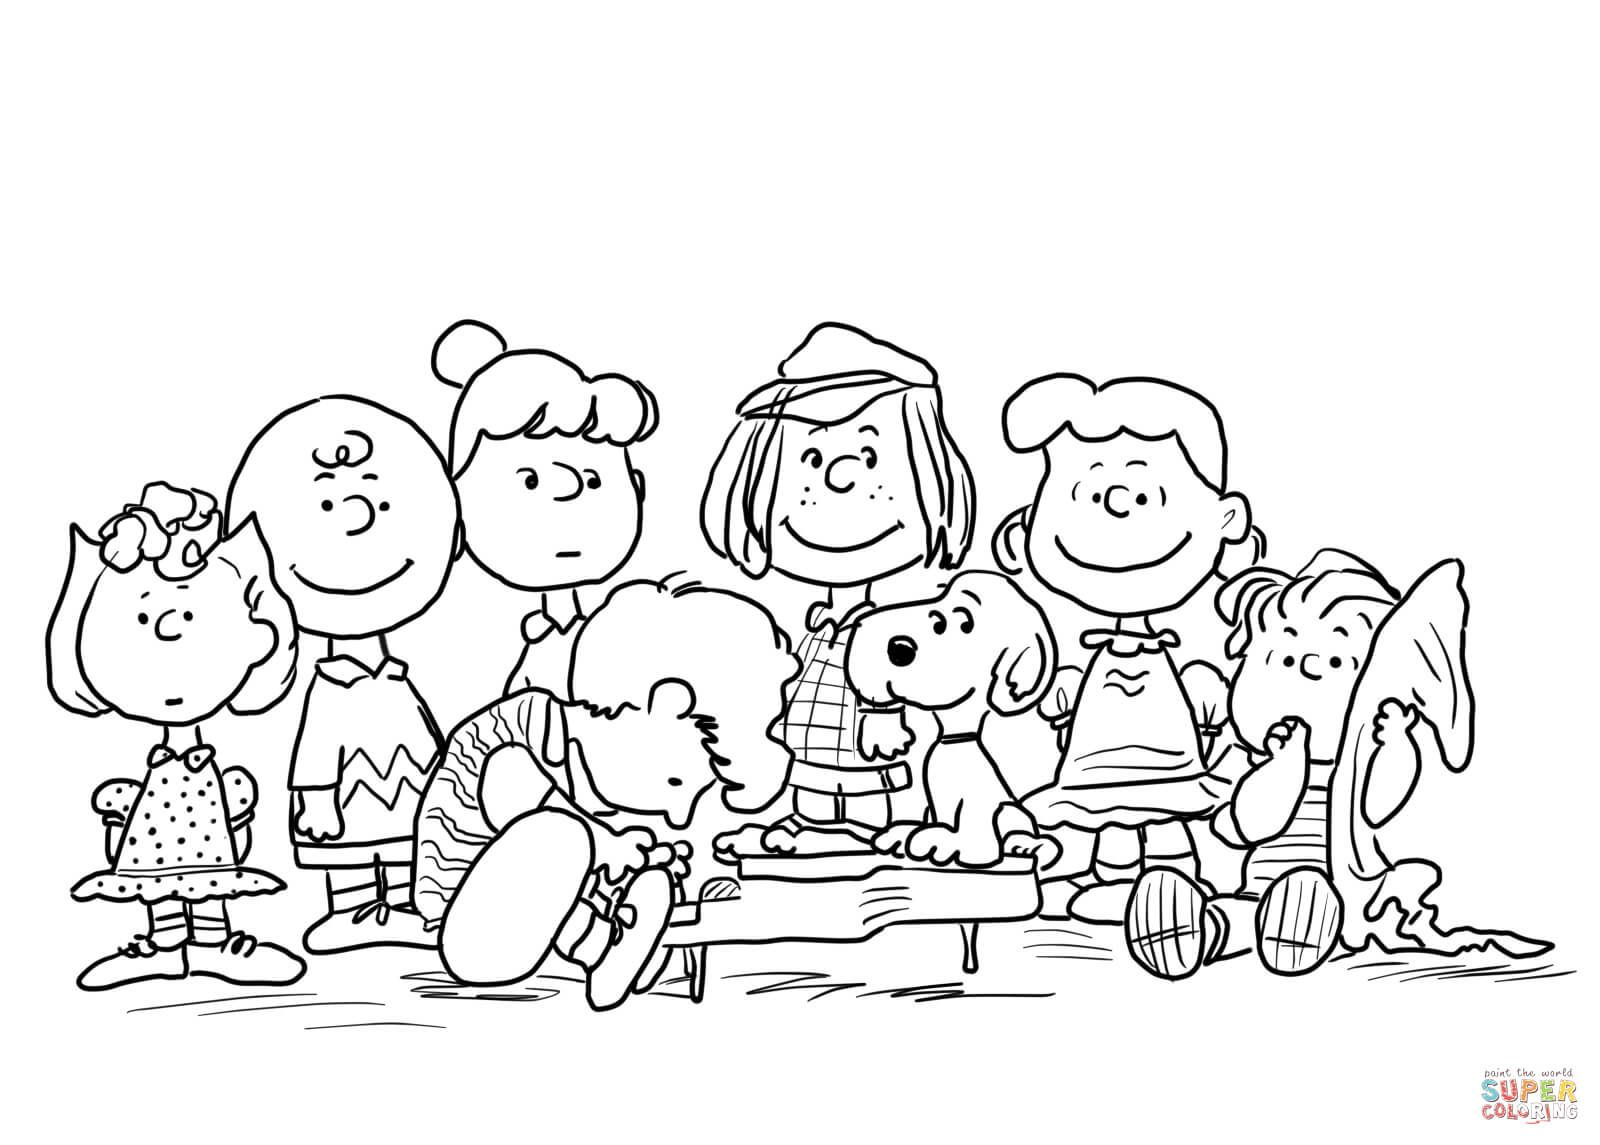 http://colorings.co/peanuts-coloring-pages/ - peanuts coloring pages ...